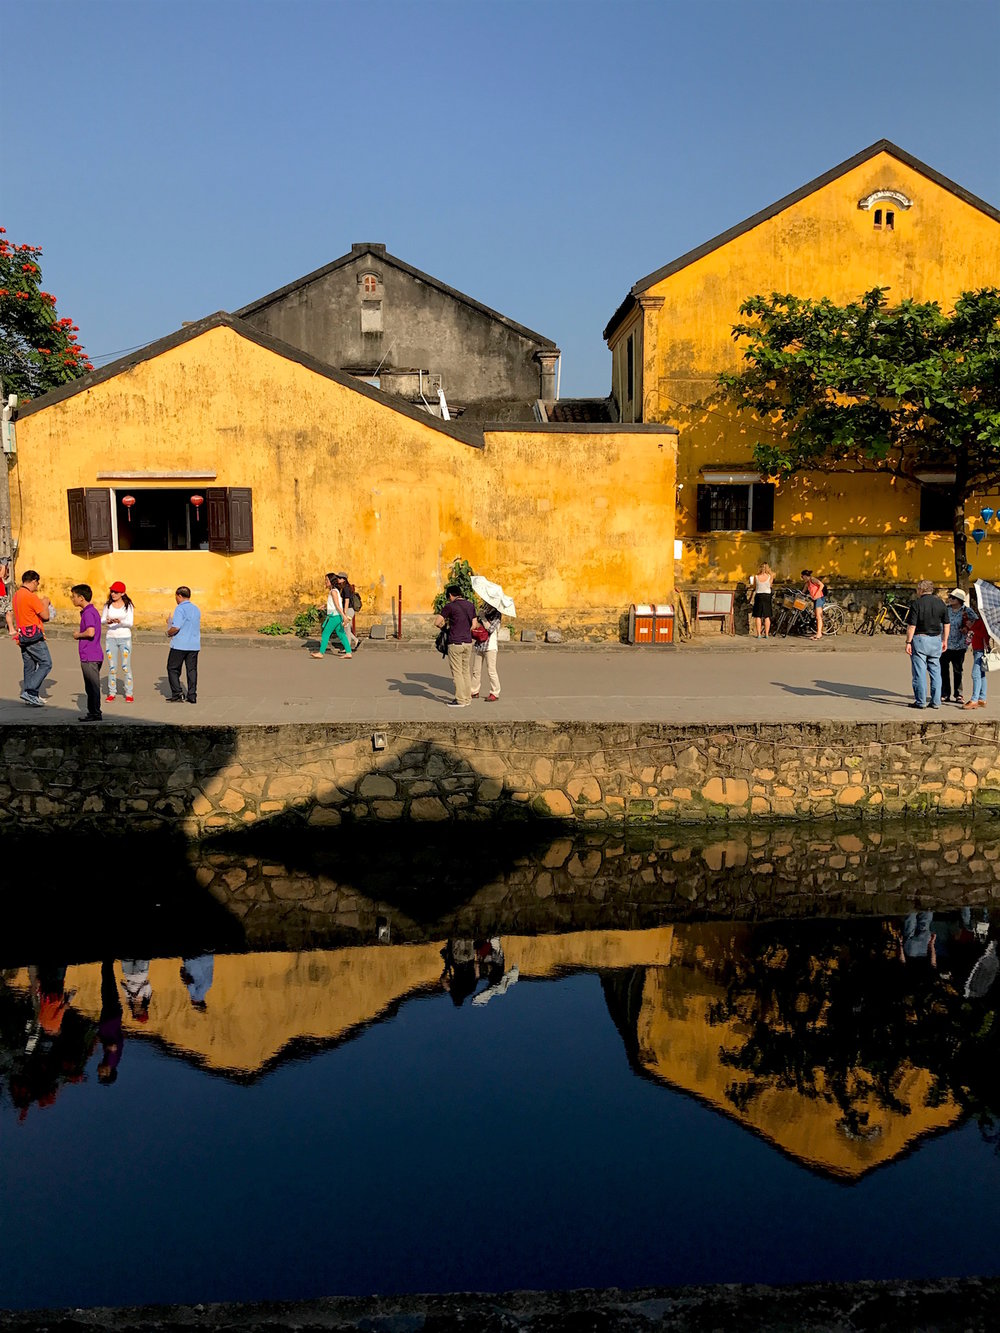 Many of the buildings in Hoi An are culturally protected, so their aging yellow facades remain intact.